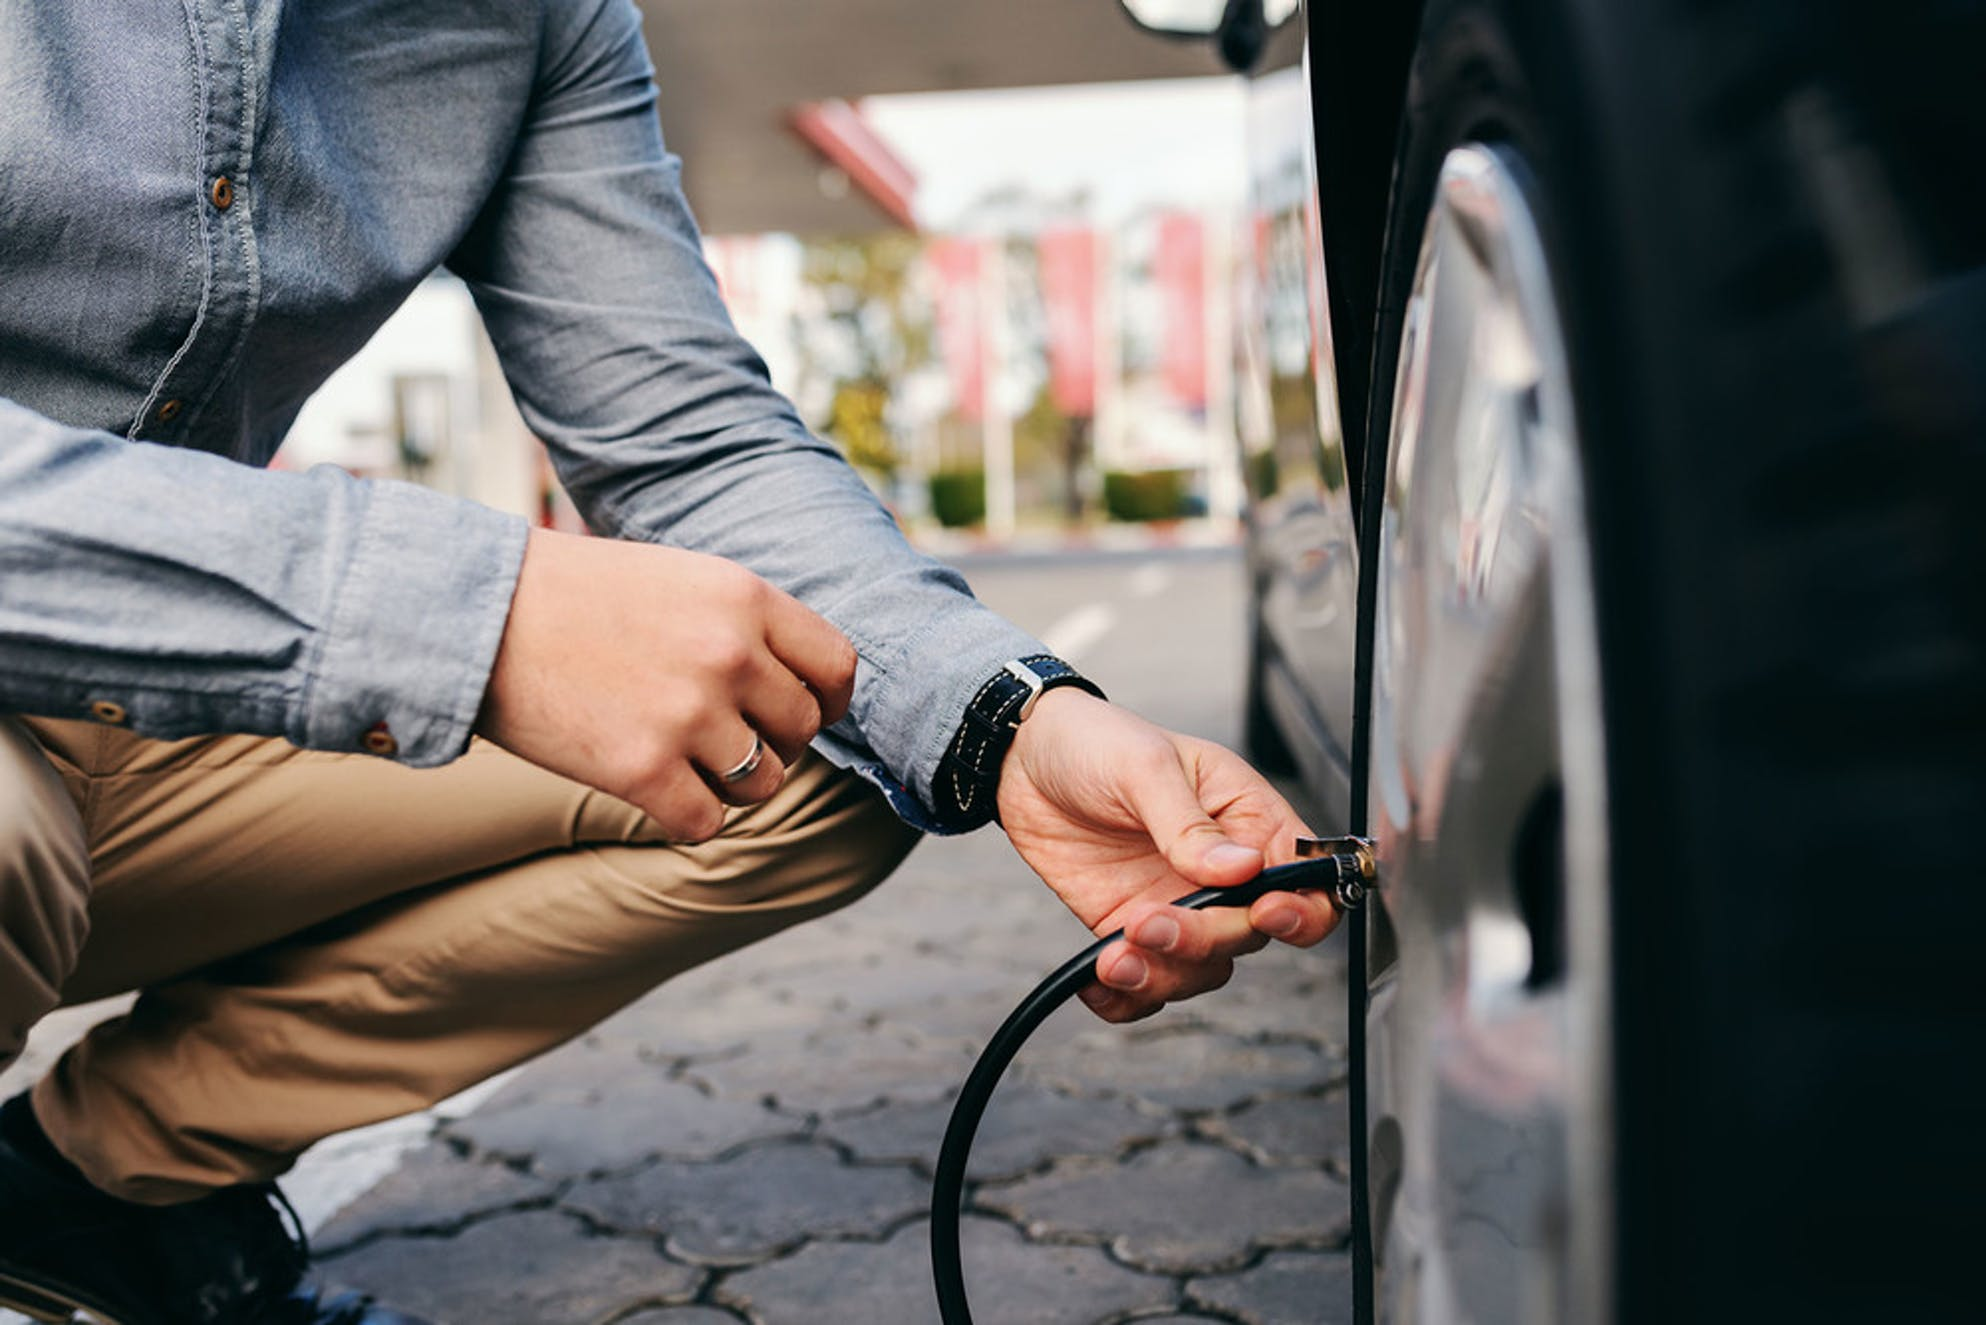 Inflating tire pressure to save money on gas